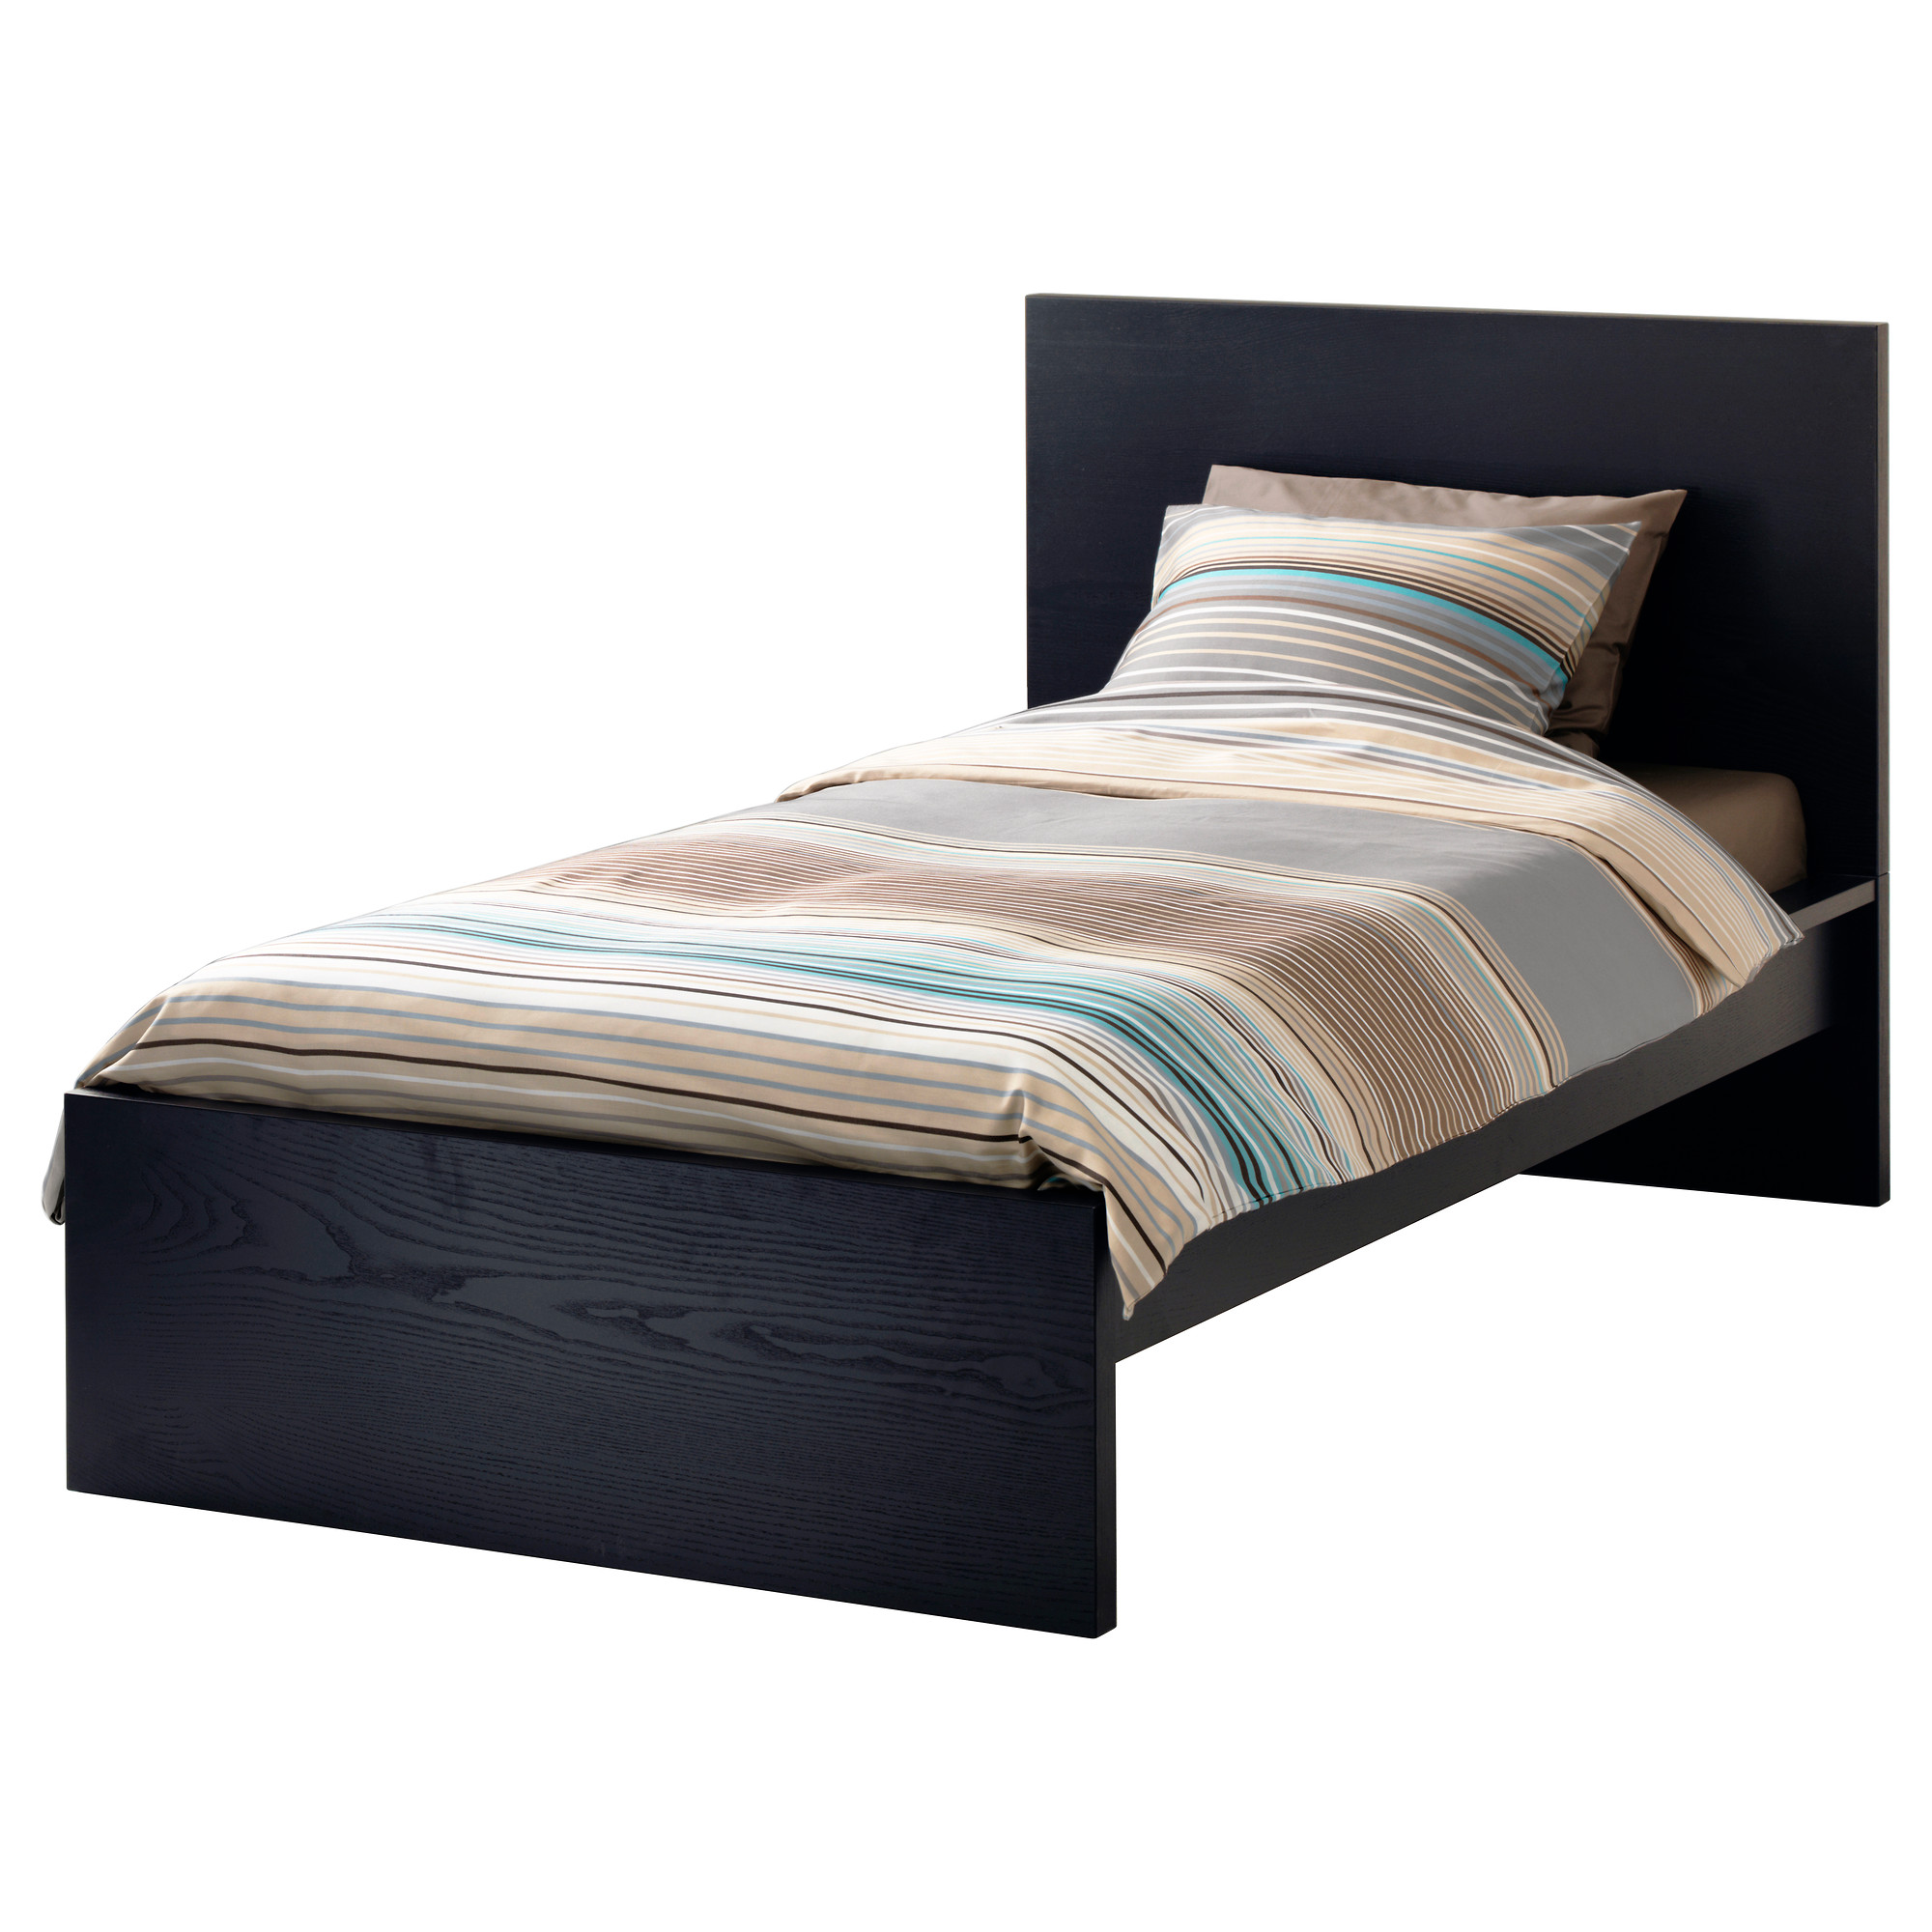 Ikea Malm Headboard Storage | Headboards Ikea | Single Bed Headboards Ikea